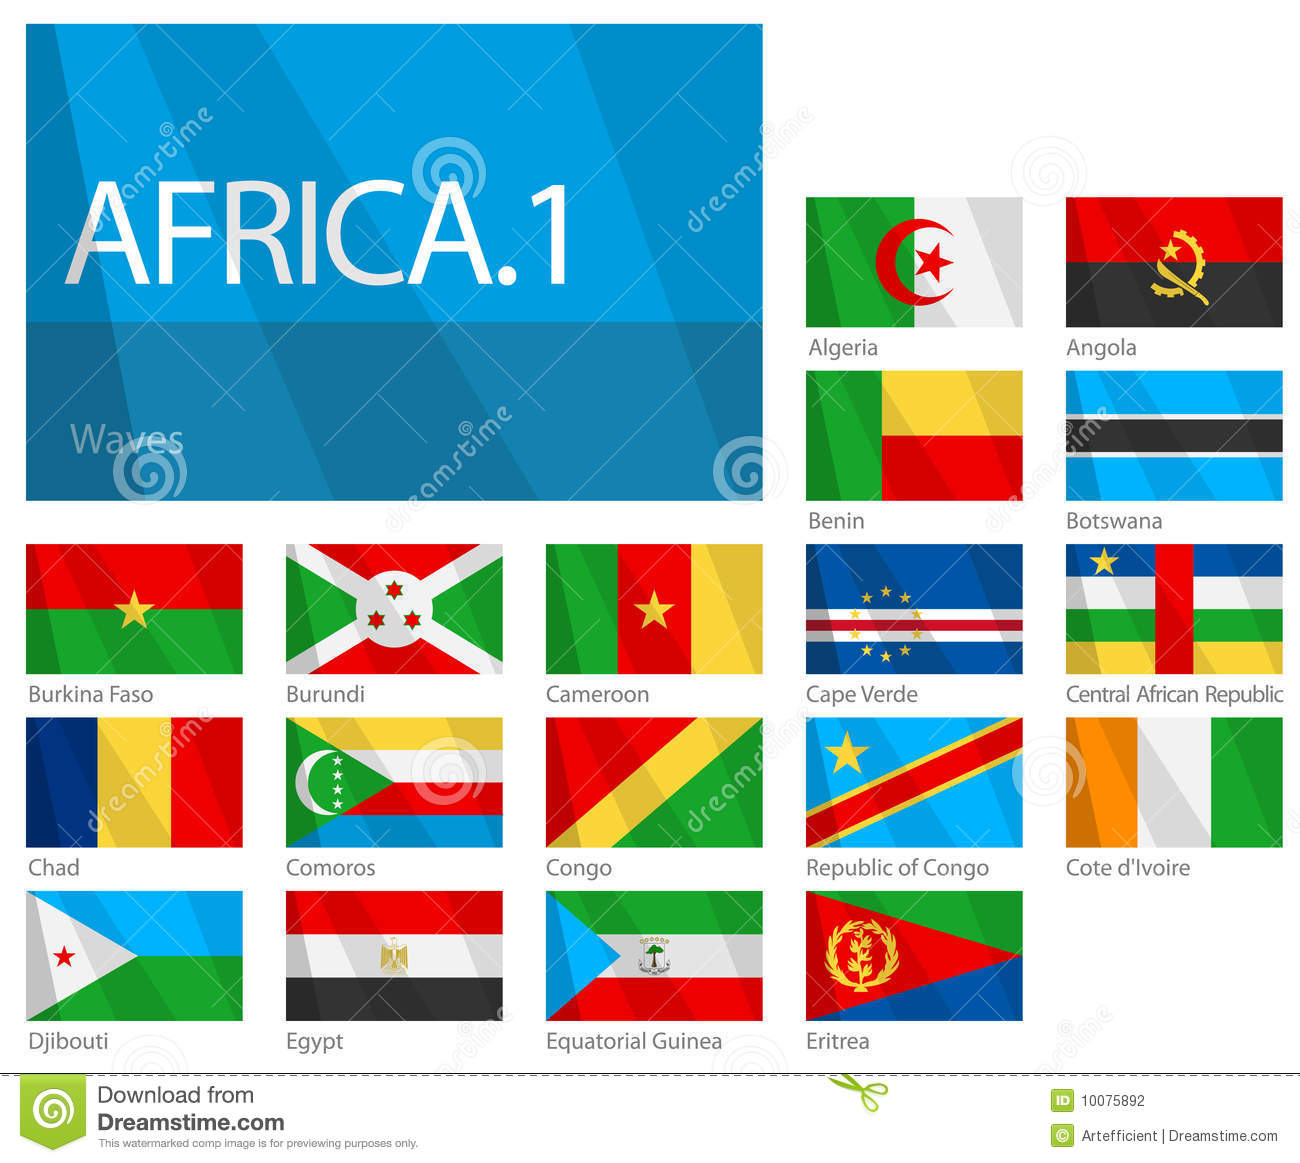 african countries part 1 world flags series illustration 10075892